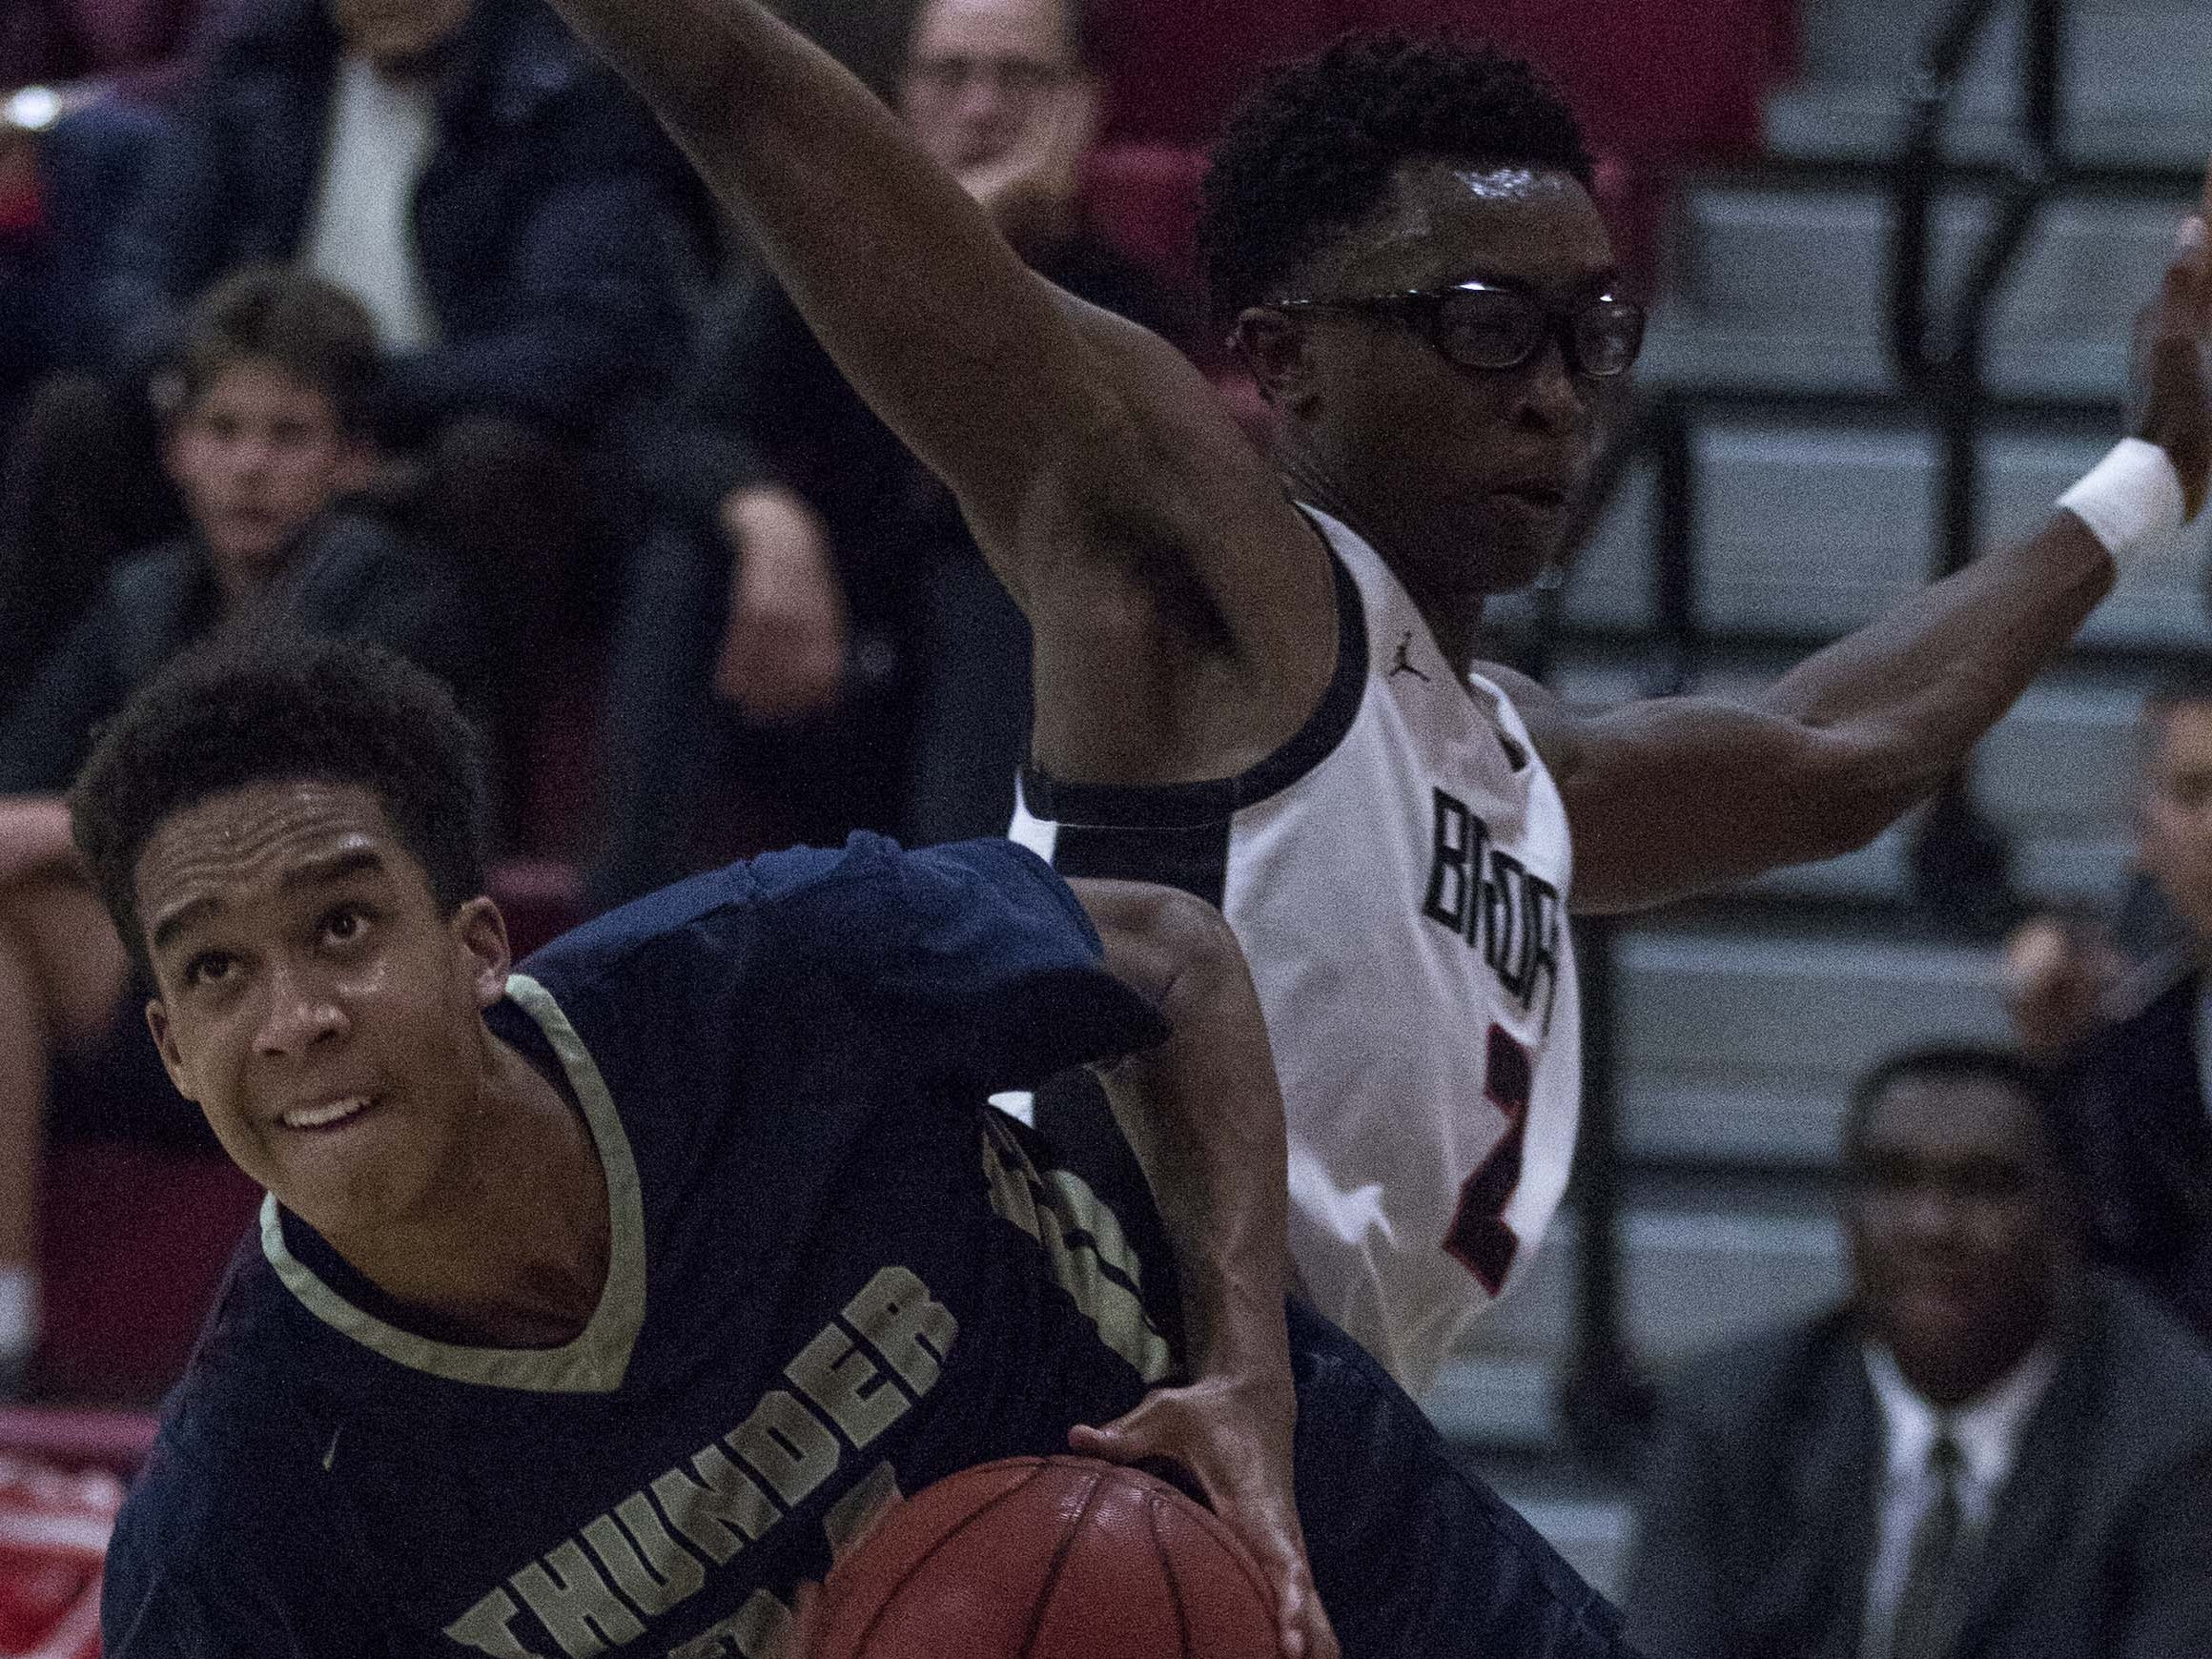 Desert Vista's Osasere Ighodaro (24) drives around Brophy's Basil Ribakare (2) as he eyes the basket during the second half of their game in Phoenix, Thursday, Feb .14,  2019.